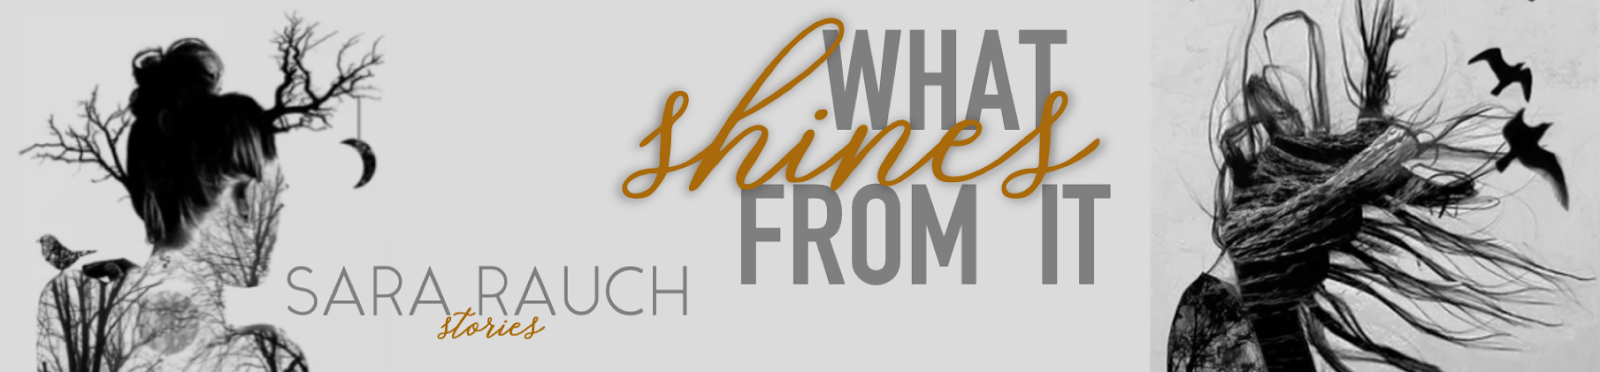 What Shines from It header banner